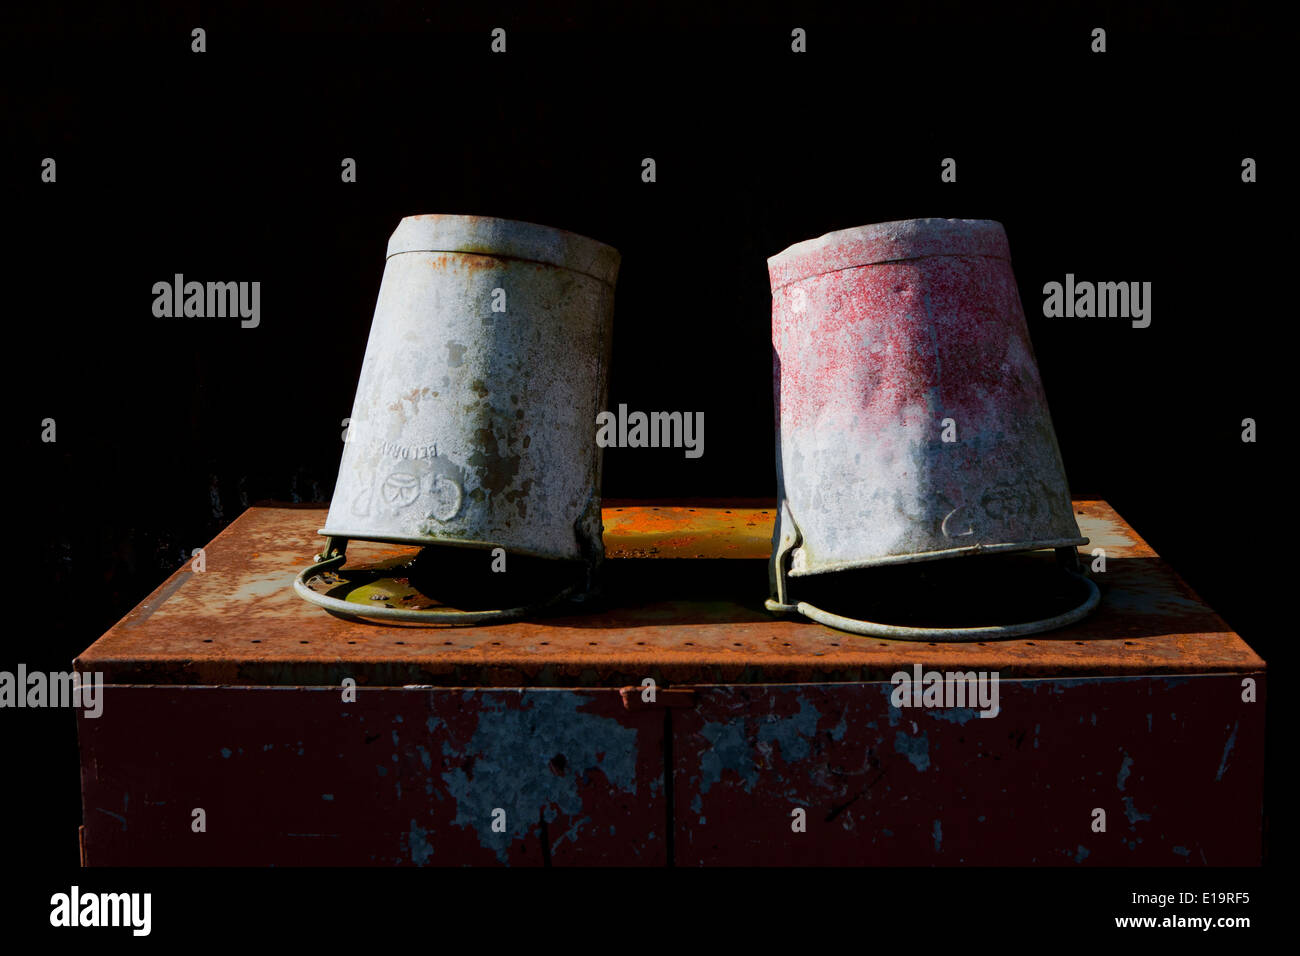 Two galvanized buckets with faded paint resting upside down on rusty metal. - Stock Image